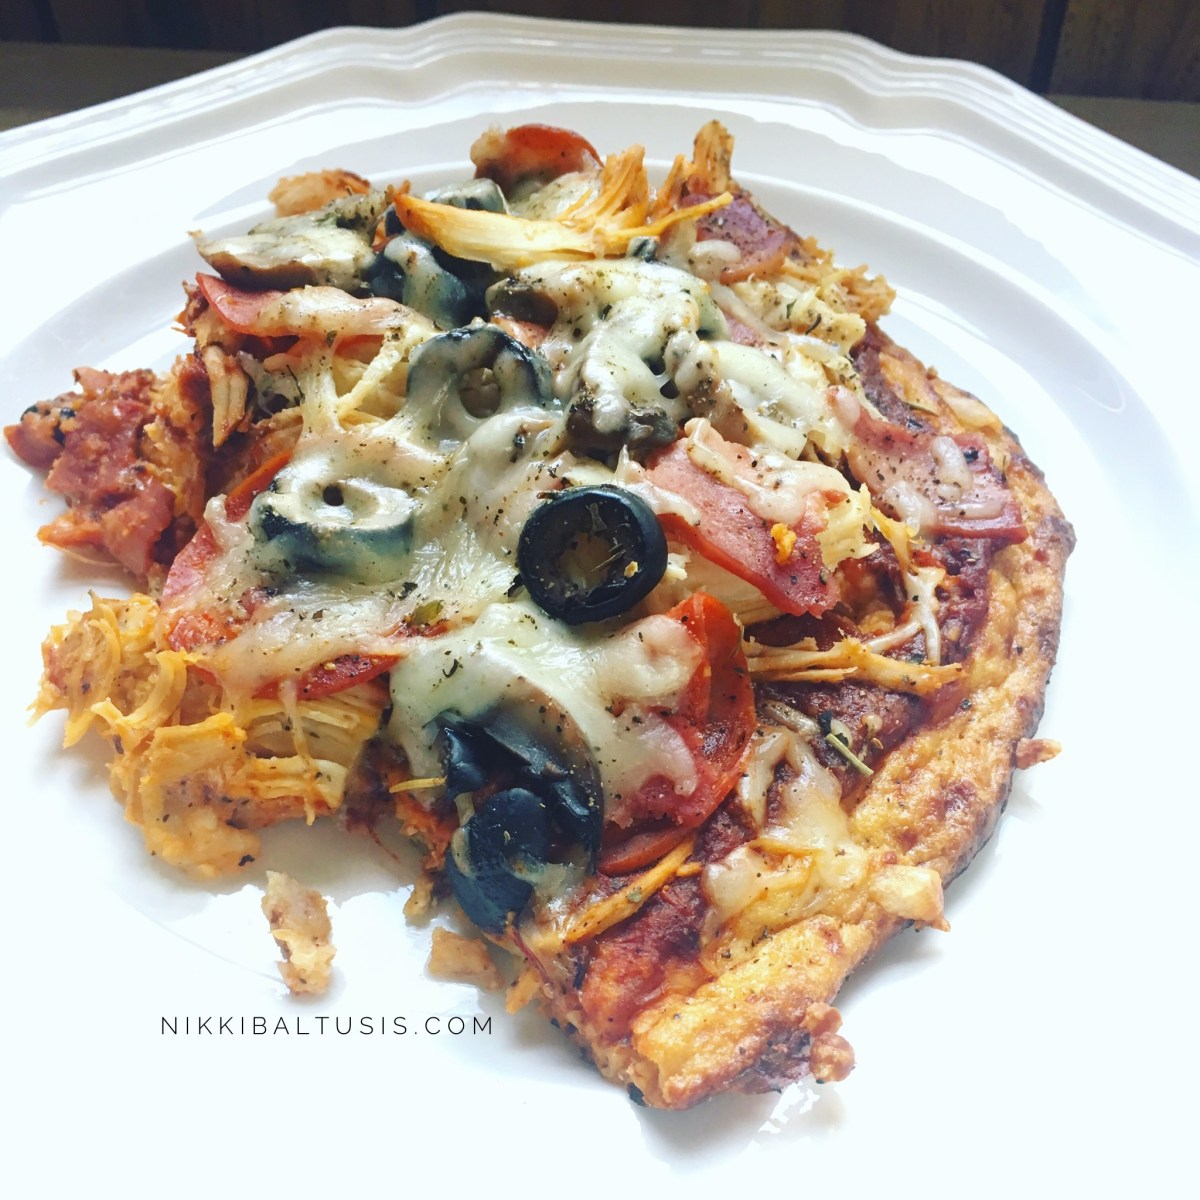 Homemade High Protein, Low Carb, Low Fat Pizza Recipe